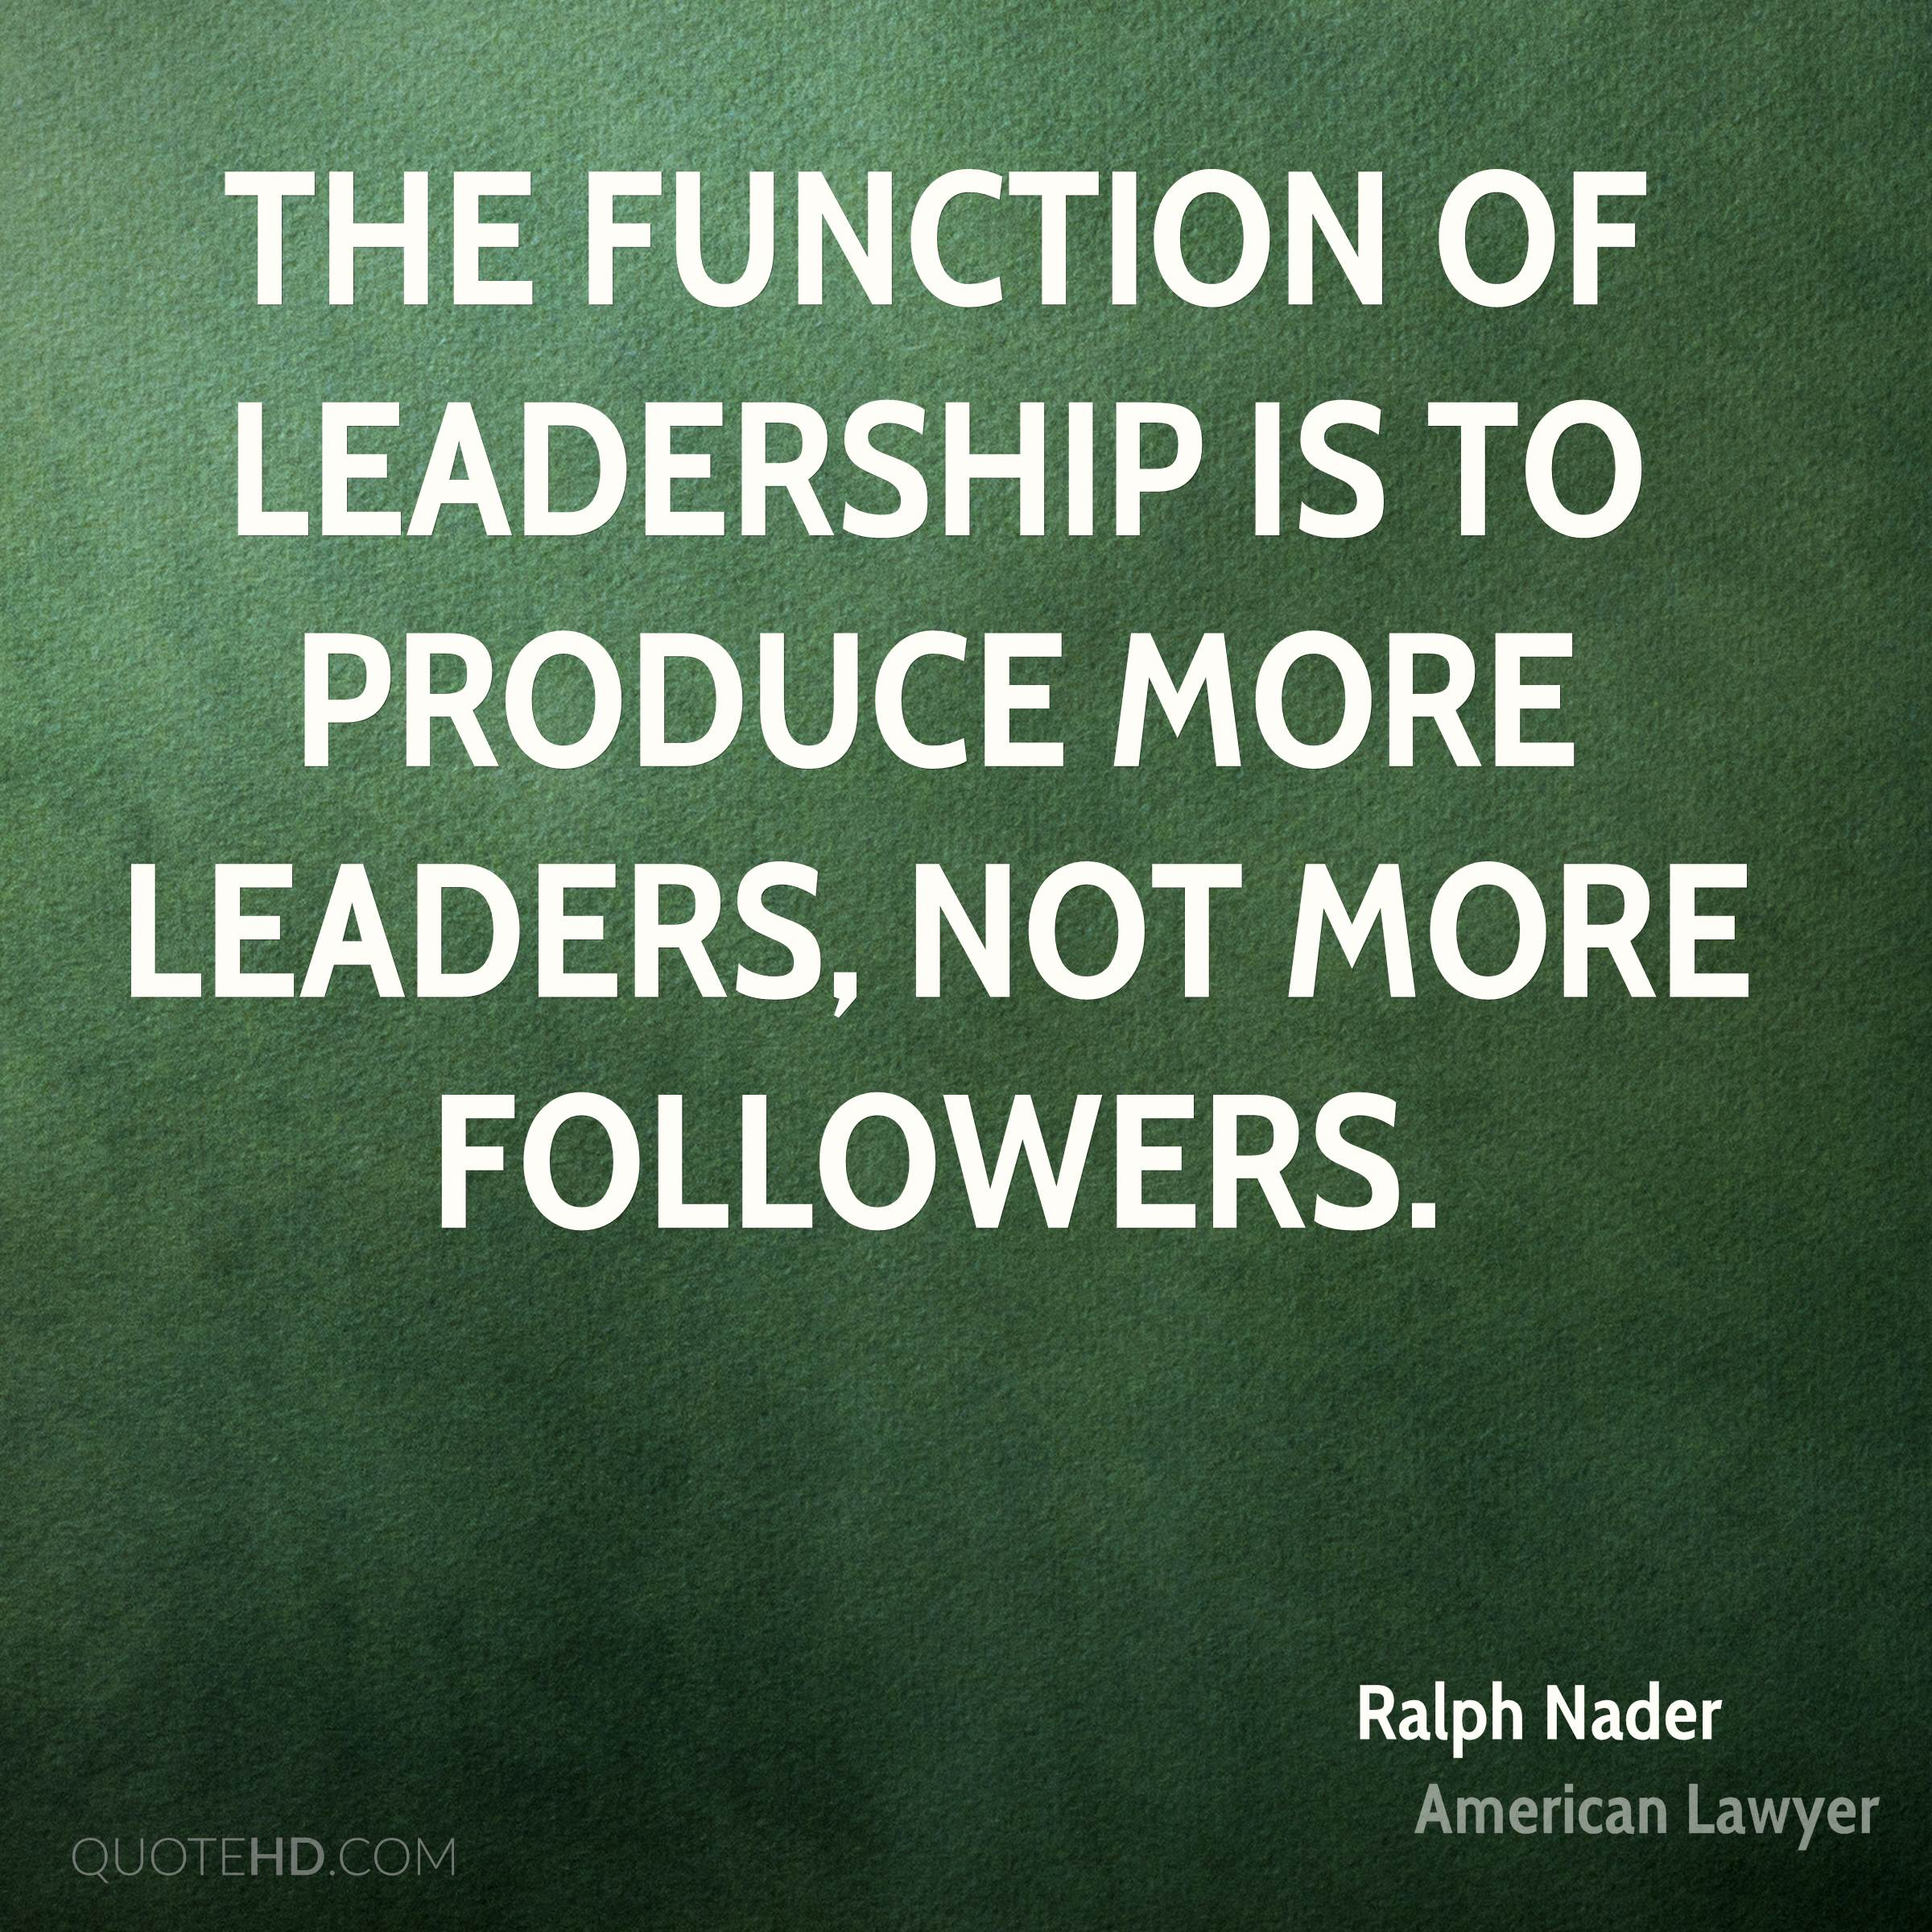 The function of leadership is to produce more leaders, not more followers.